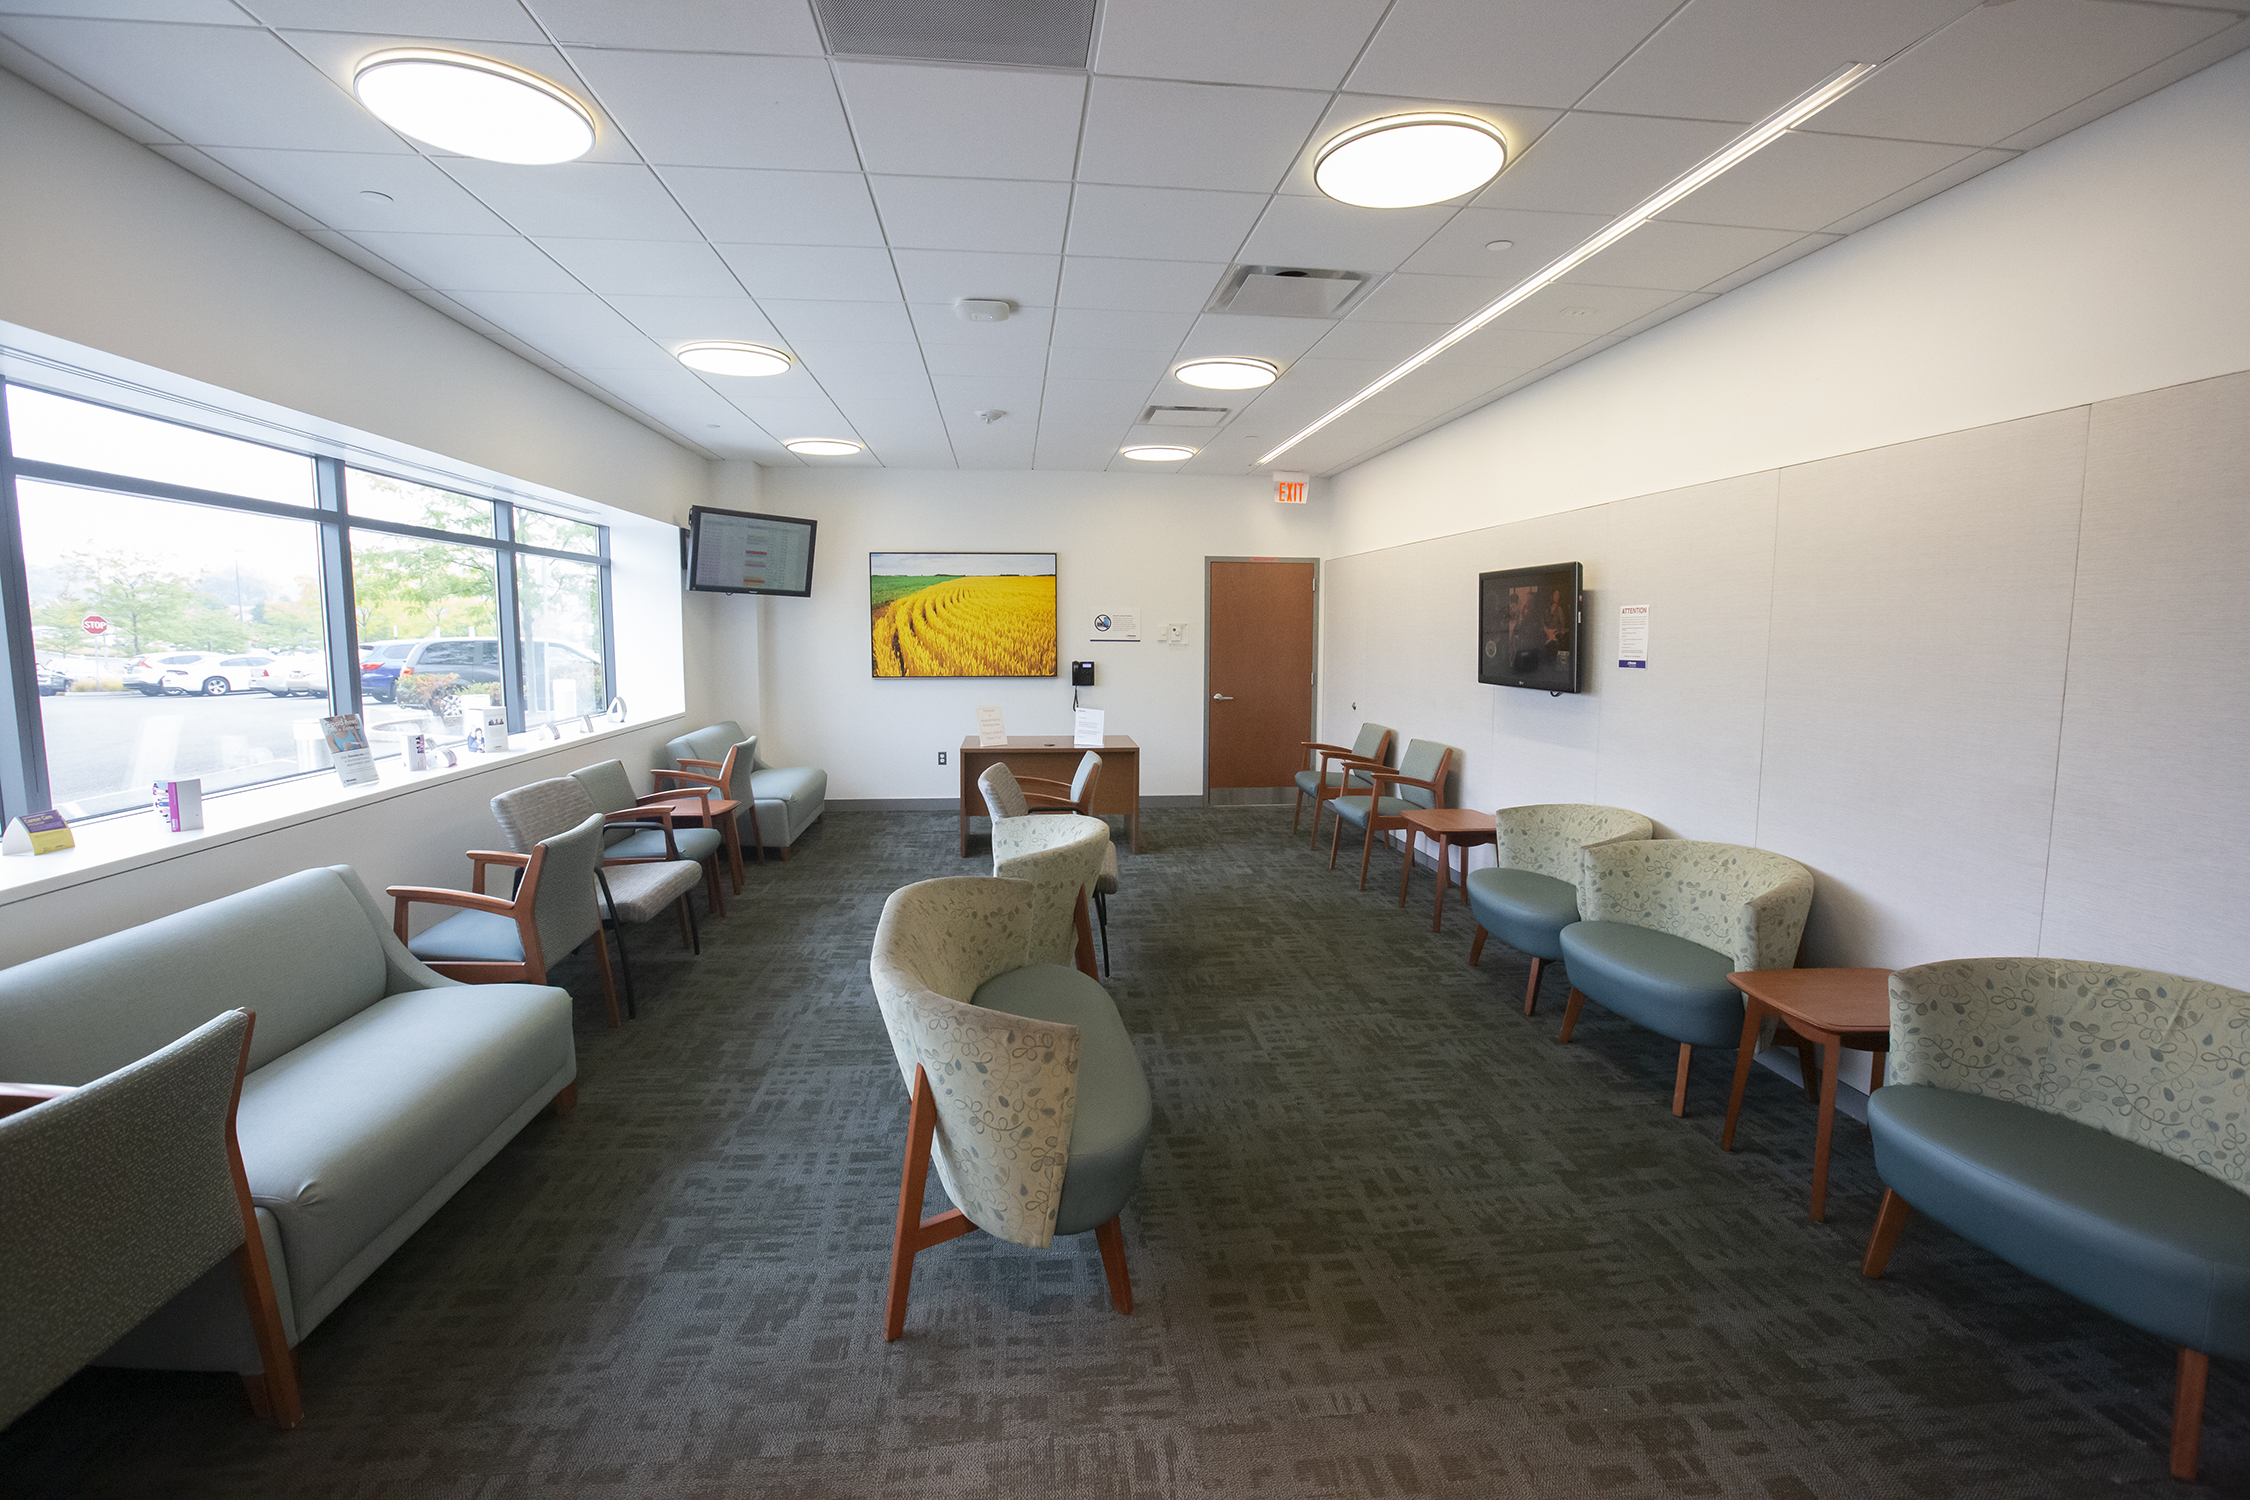 image of outpatient surgery area